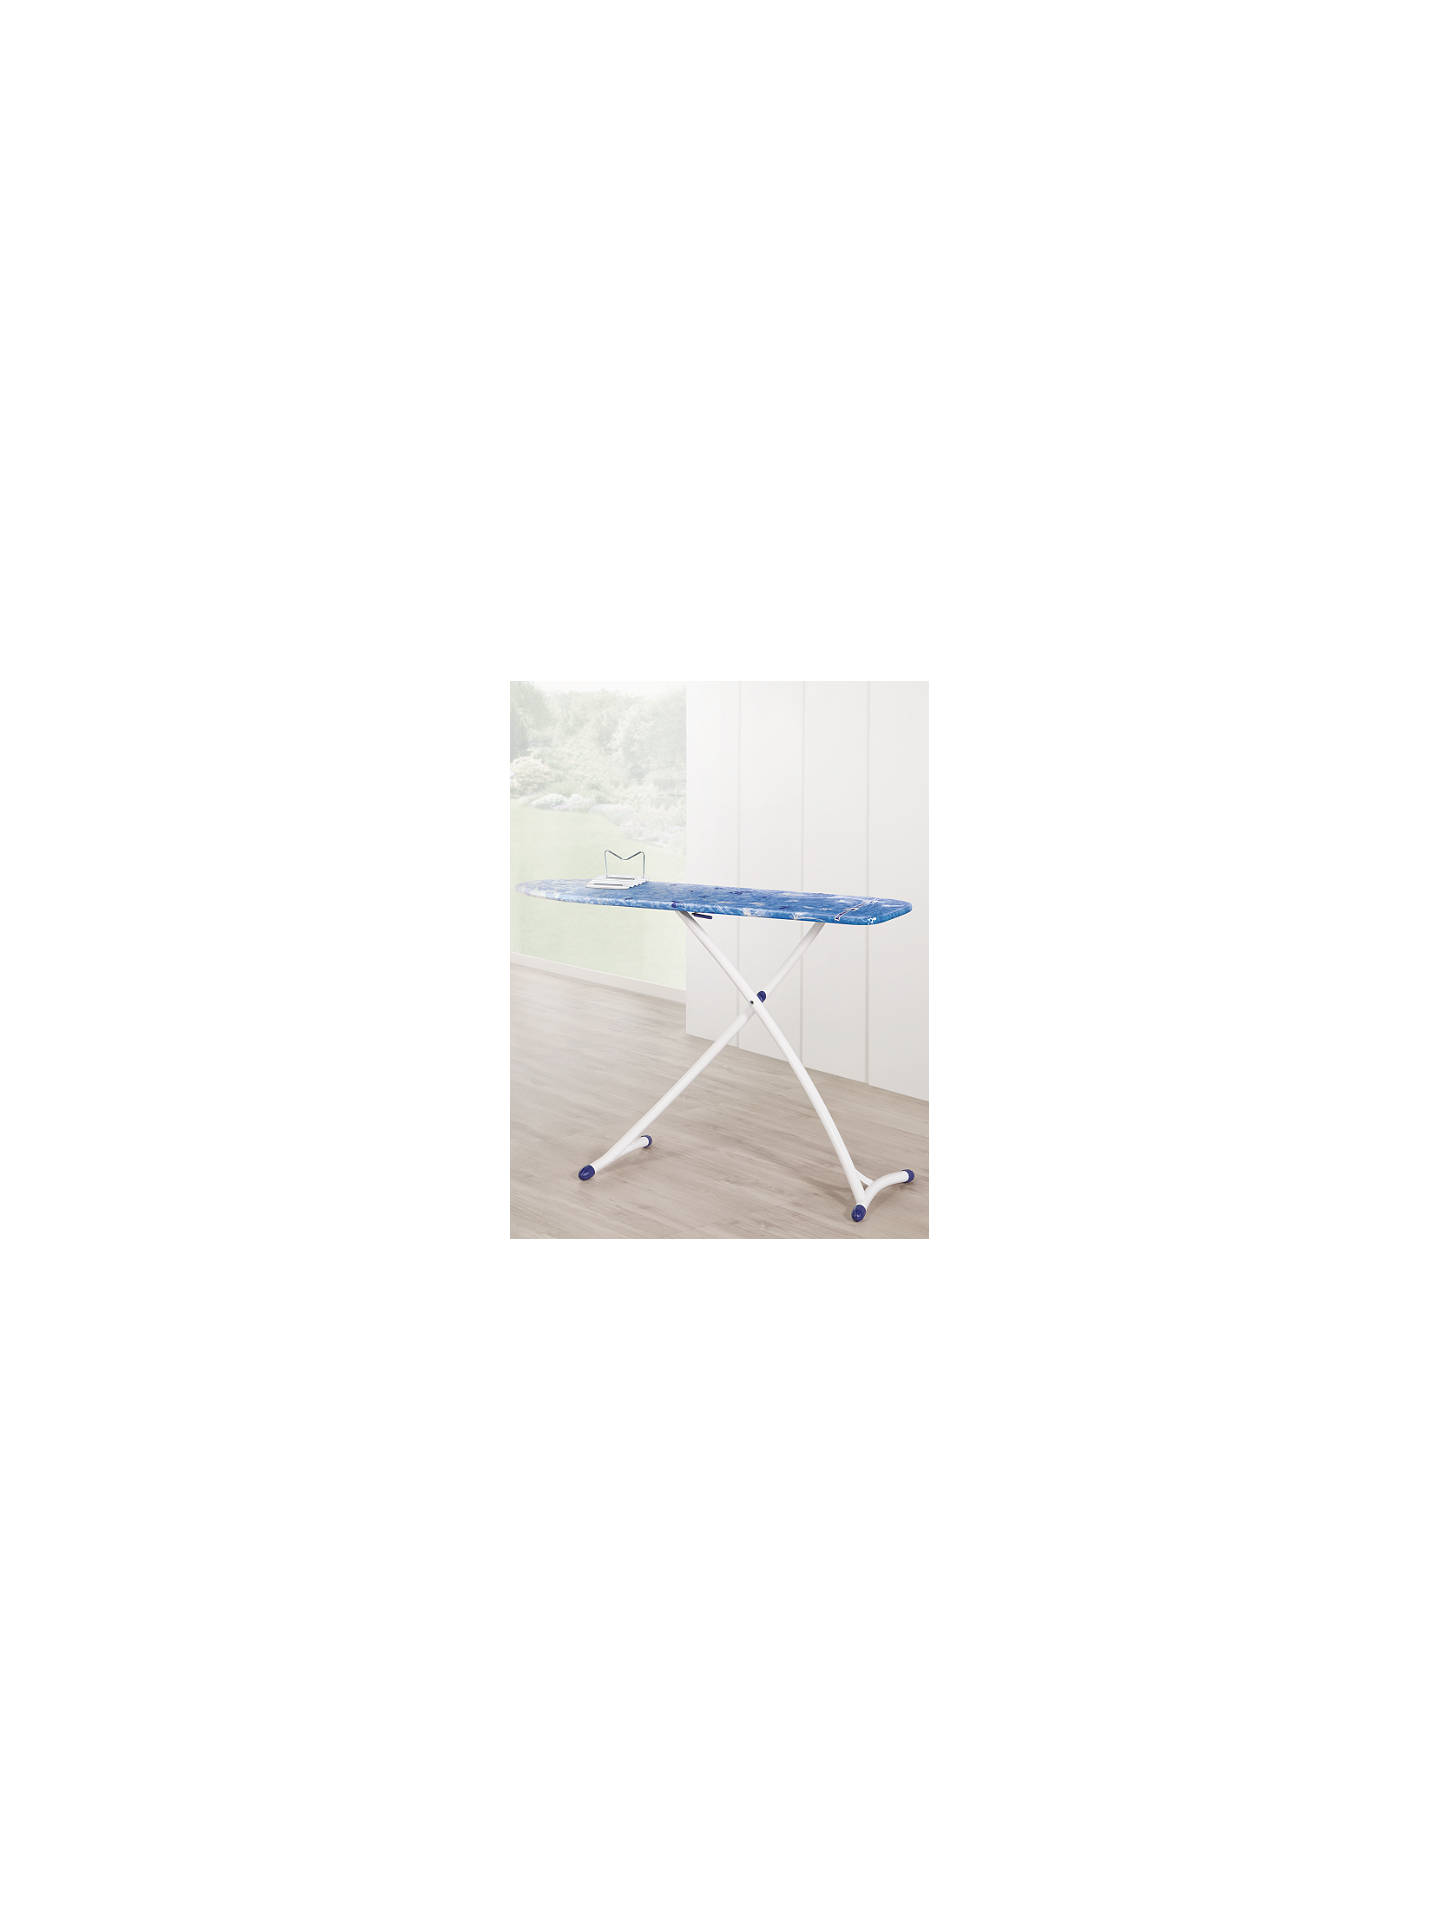 Buy Leifheit Airboard Deluxe Extra Large Ironing Board Online at johnlewis.com